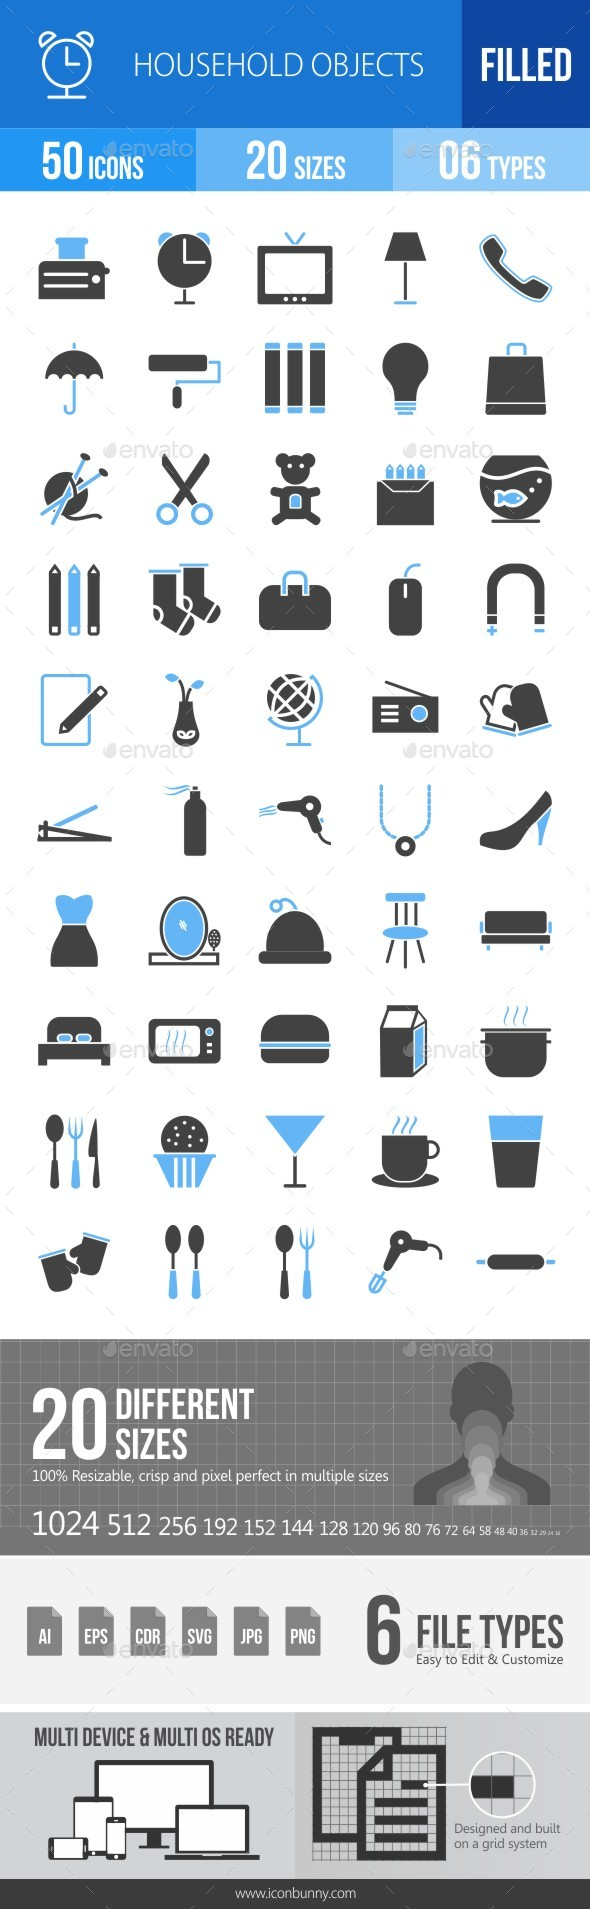 50 Household Objects Filled Blue & Black Icons - Icons